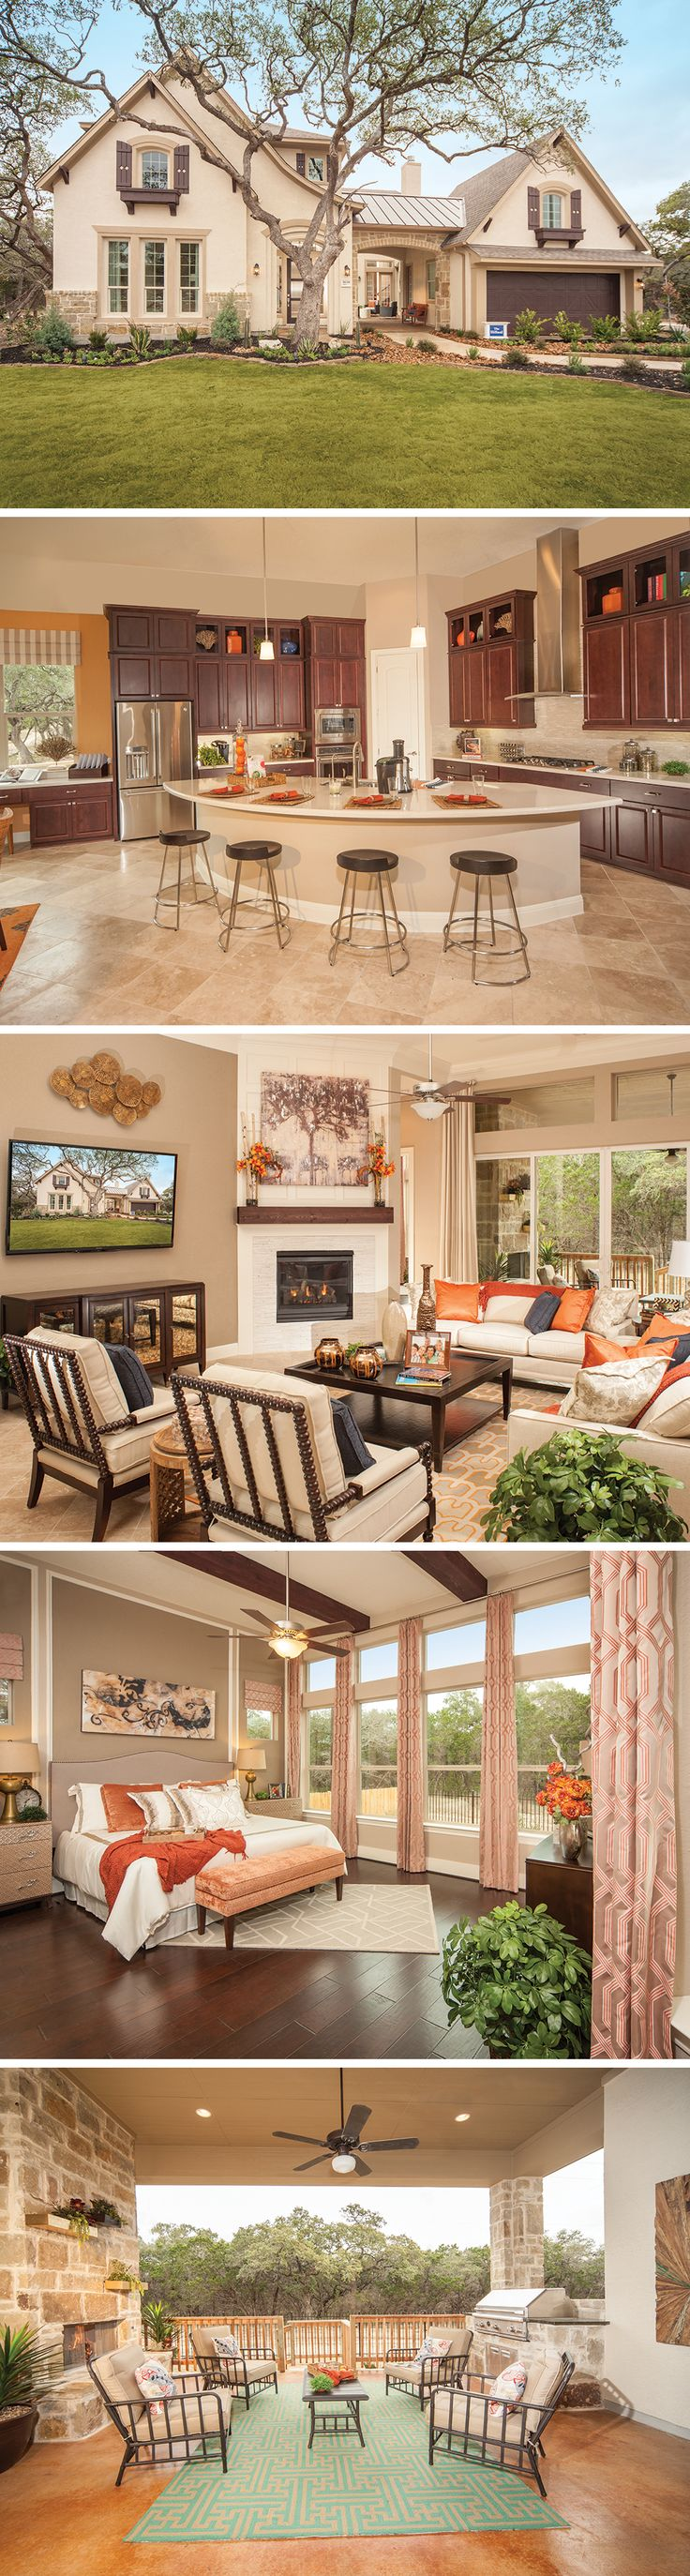 David Weekley Homes is now building award-winning homes like The Hillard in the premium community, Shavano Highlands, in San Antonio, TX! In Shavano Highlands, you'll experience not only beautiful homes like The Hillard, but also a private, gated community, easy access to Salado Creek Greenway hiking and biking trails, new retail and office space at the community entrance, and beautifully landscaped entrances to the community. Come visit today!